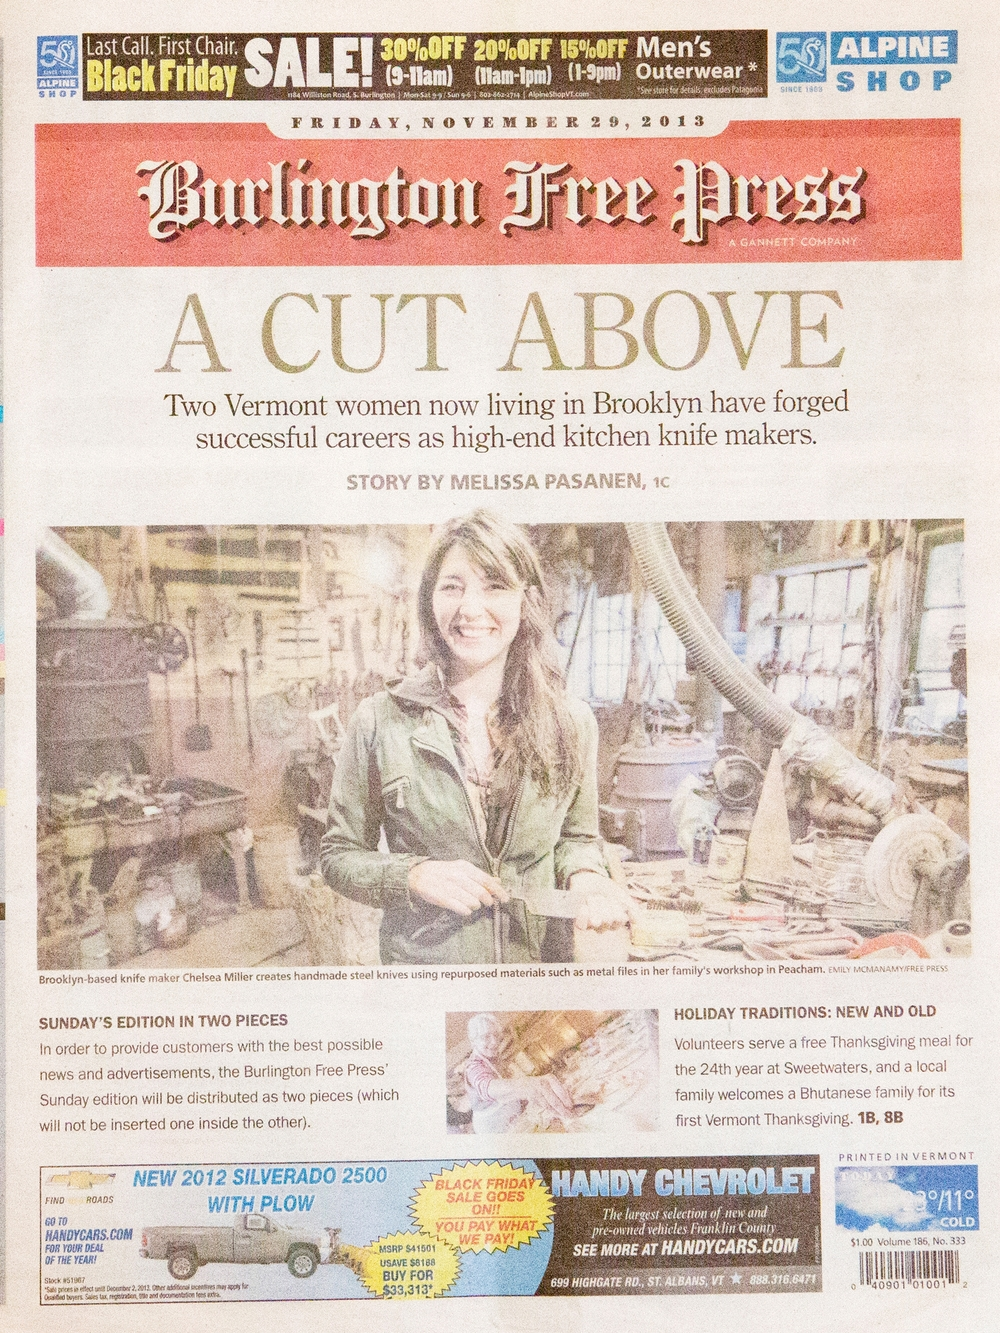 <p><a>BURLINGTON FREE PRESS </a>NOVEMBER, 2013</p>